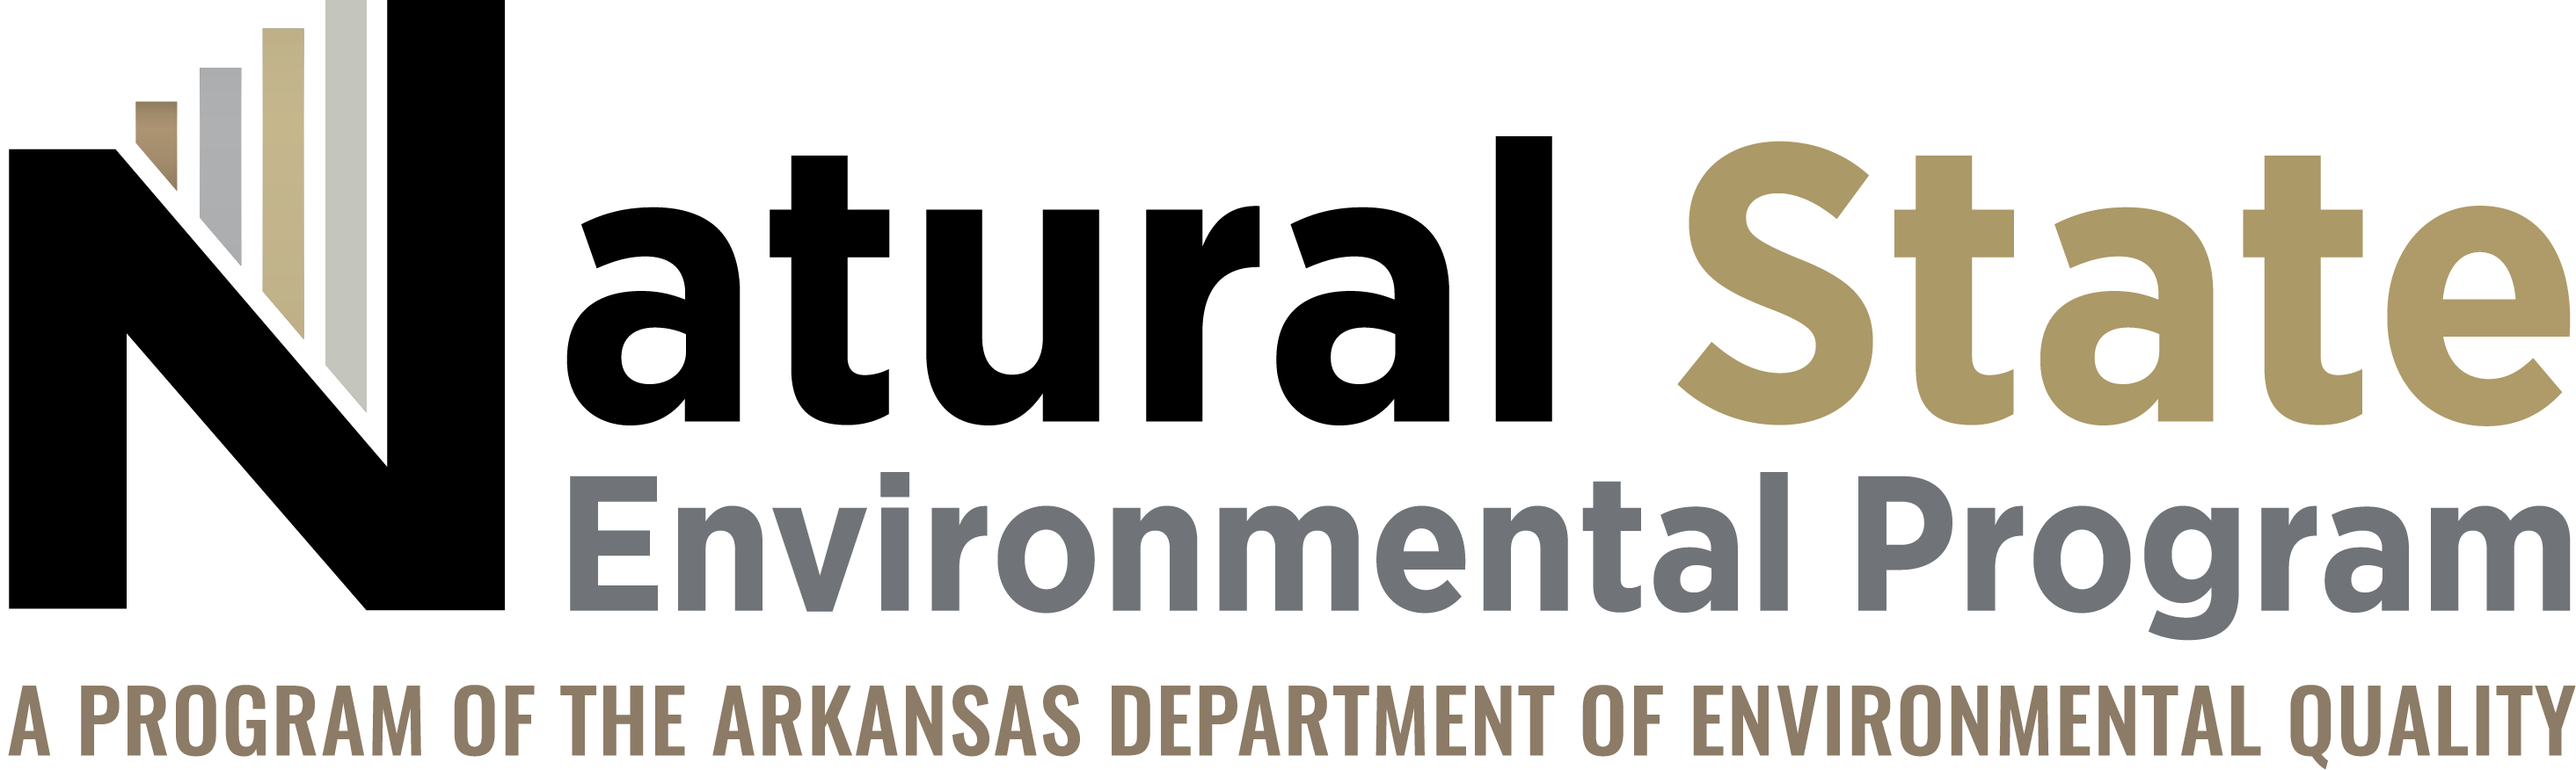 Natural State Environmental Program. A program of the Arkansas Department of Environmental Quality